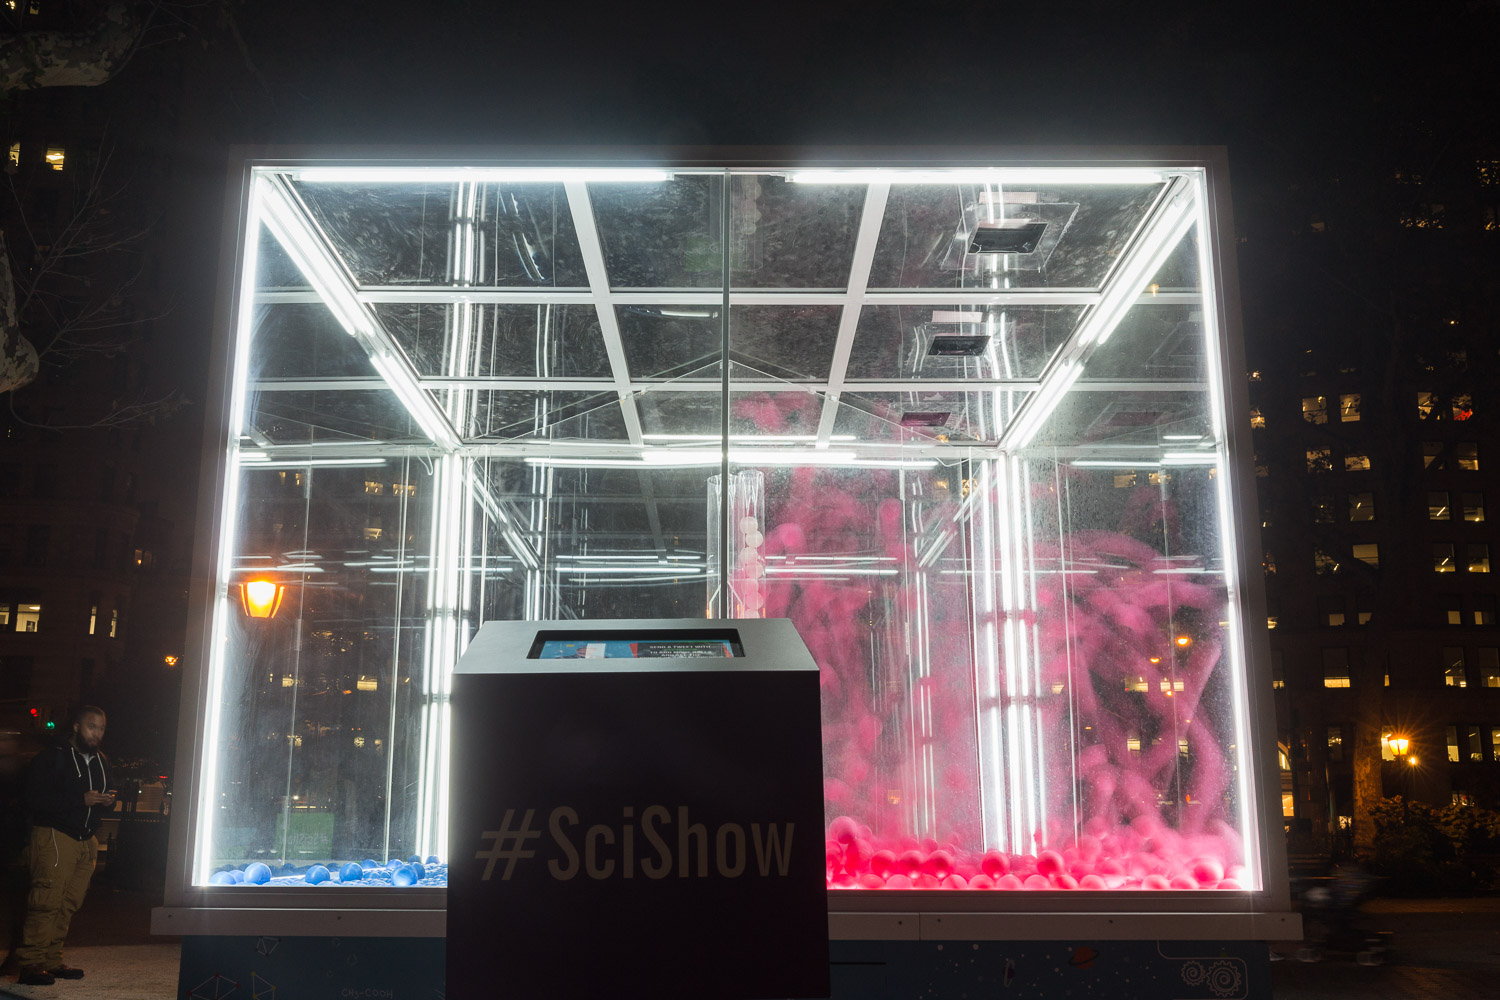 YouTube/ SciShow energy demonstration illuminates the night. The #SciShow box displays info about the event.